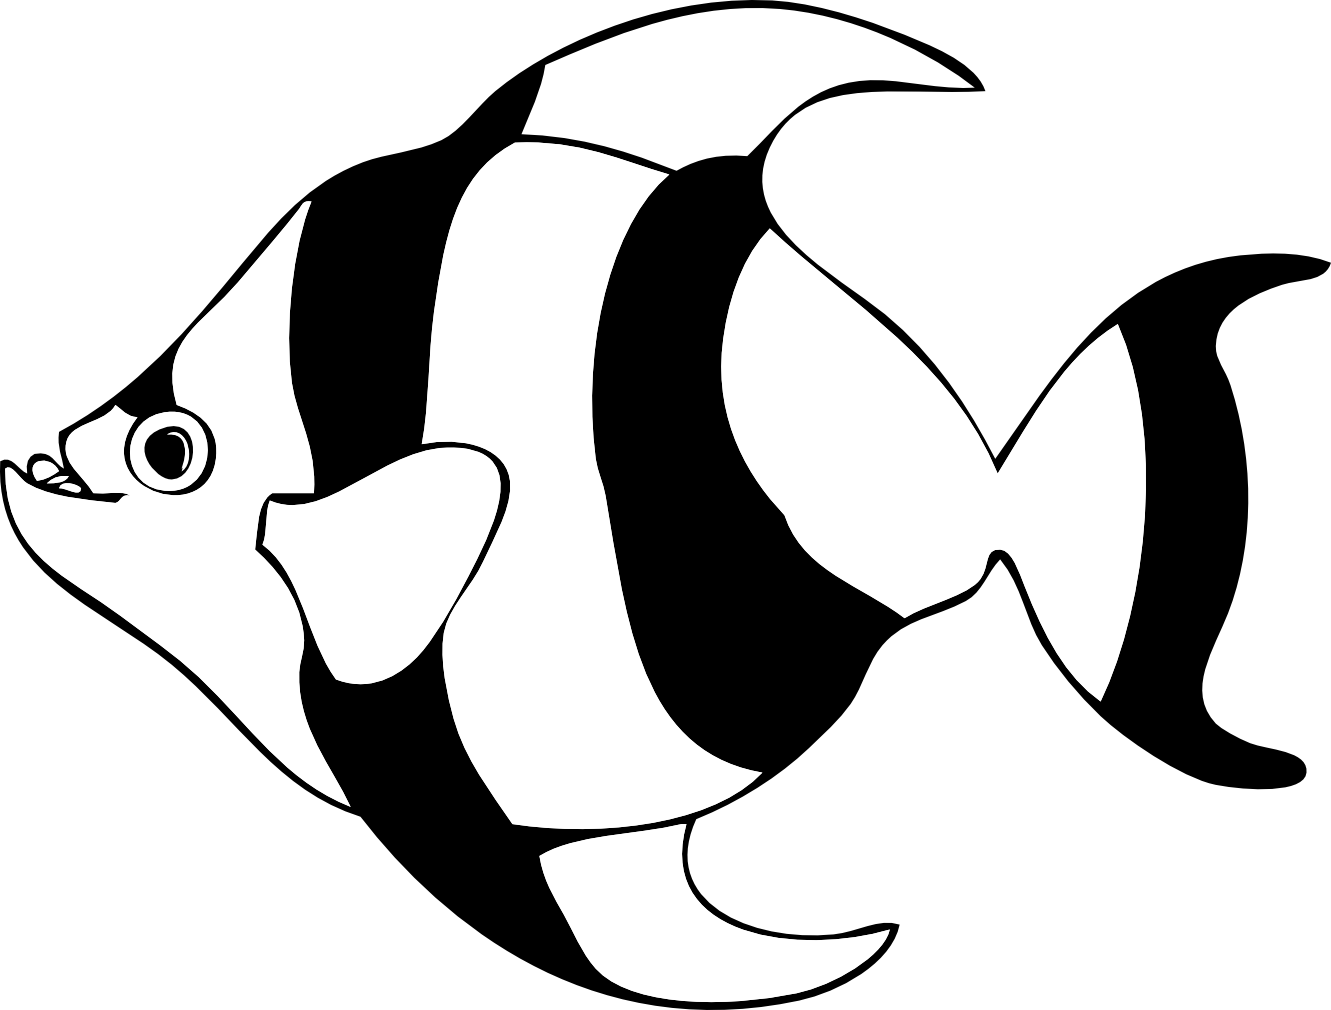 Fish black and white. Fishing clipart logo